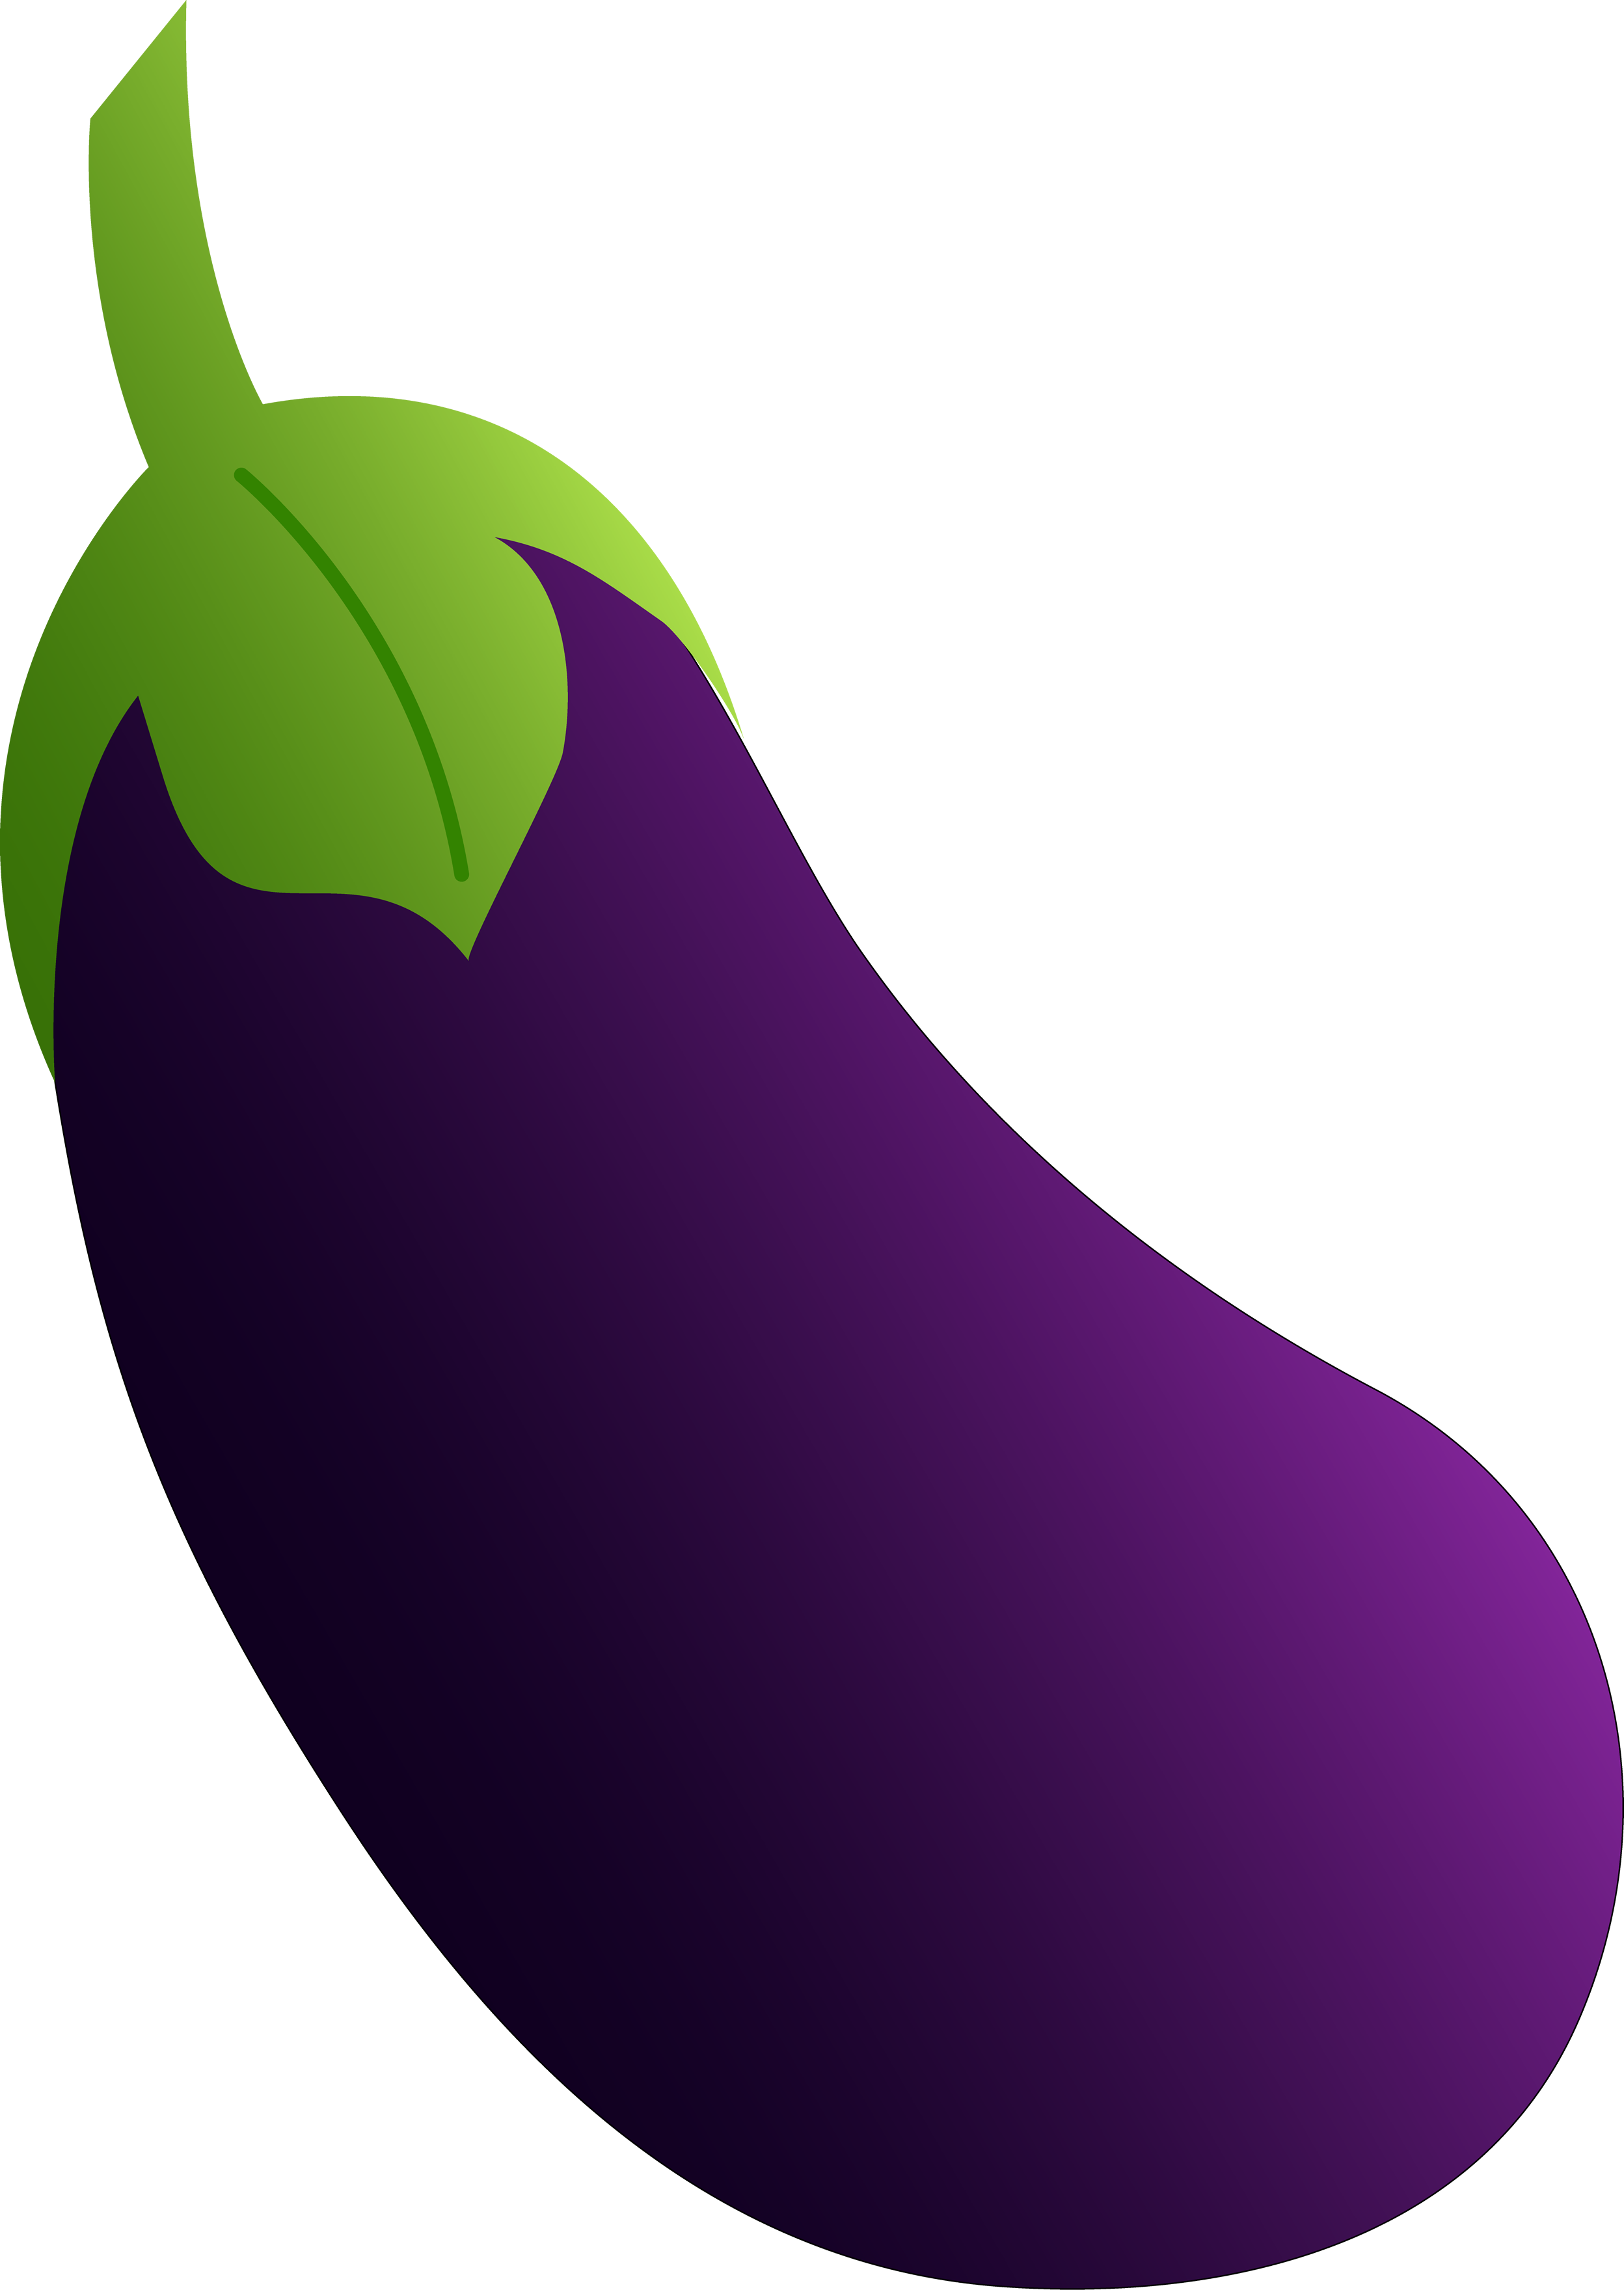 Clip art eggplant png. Images free download